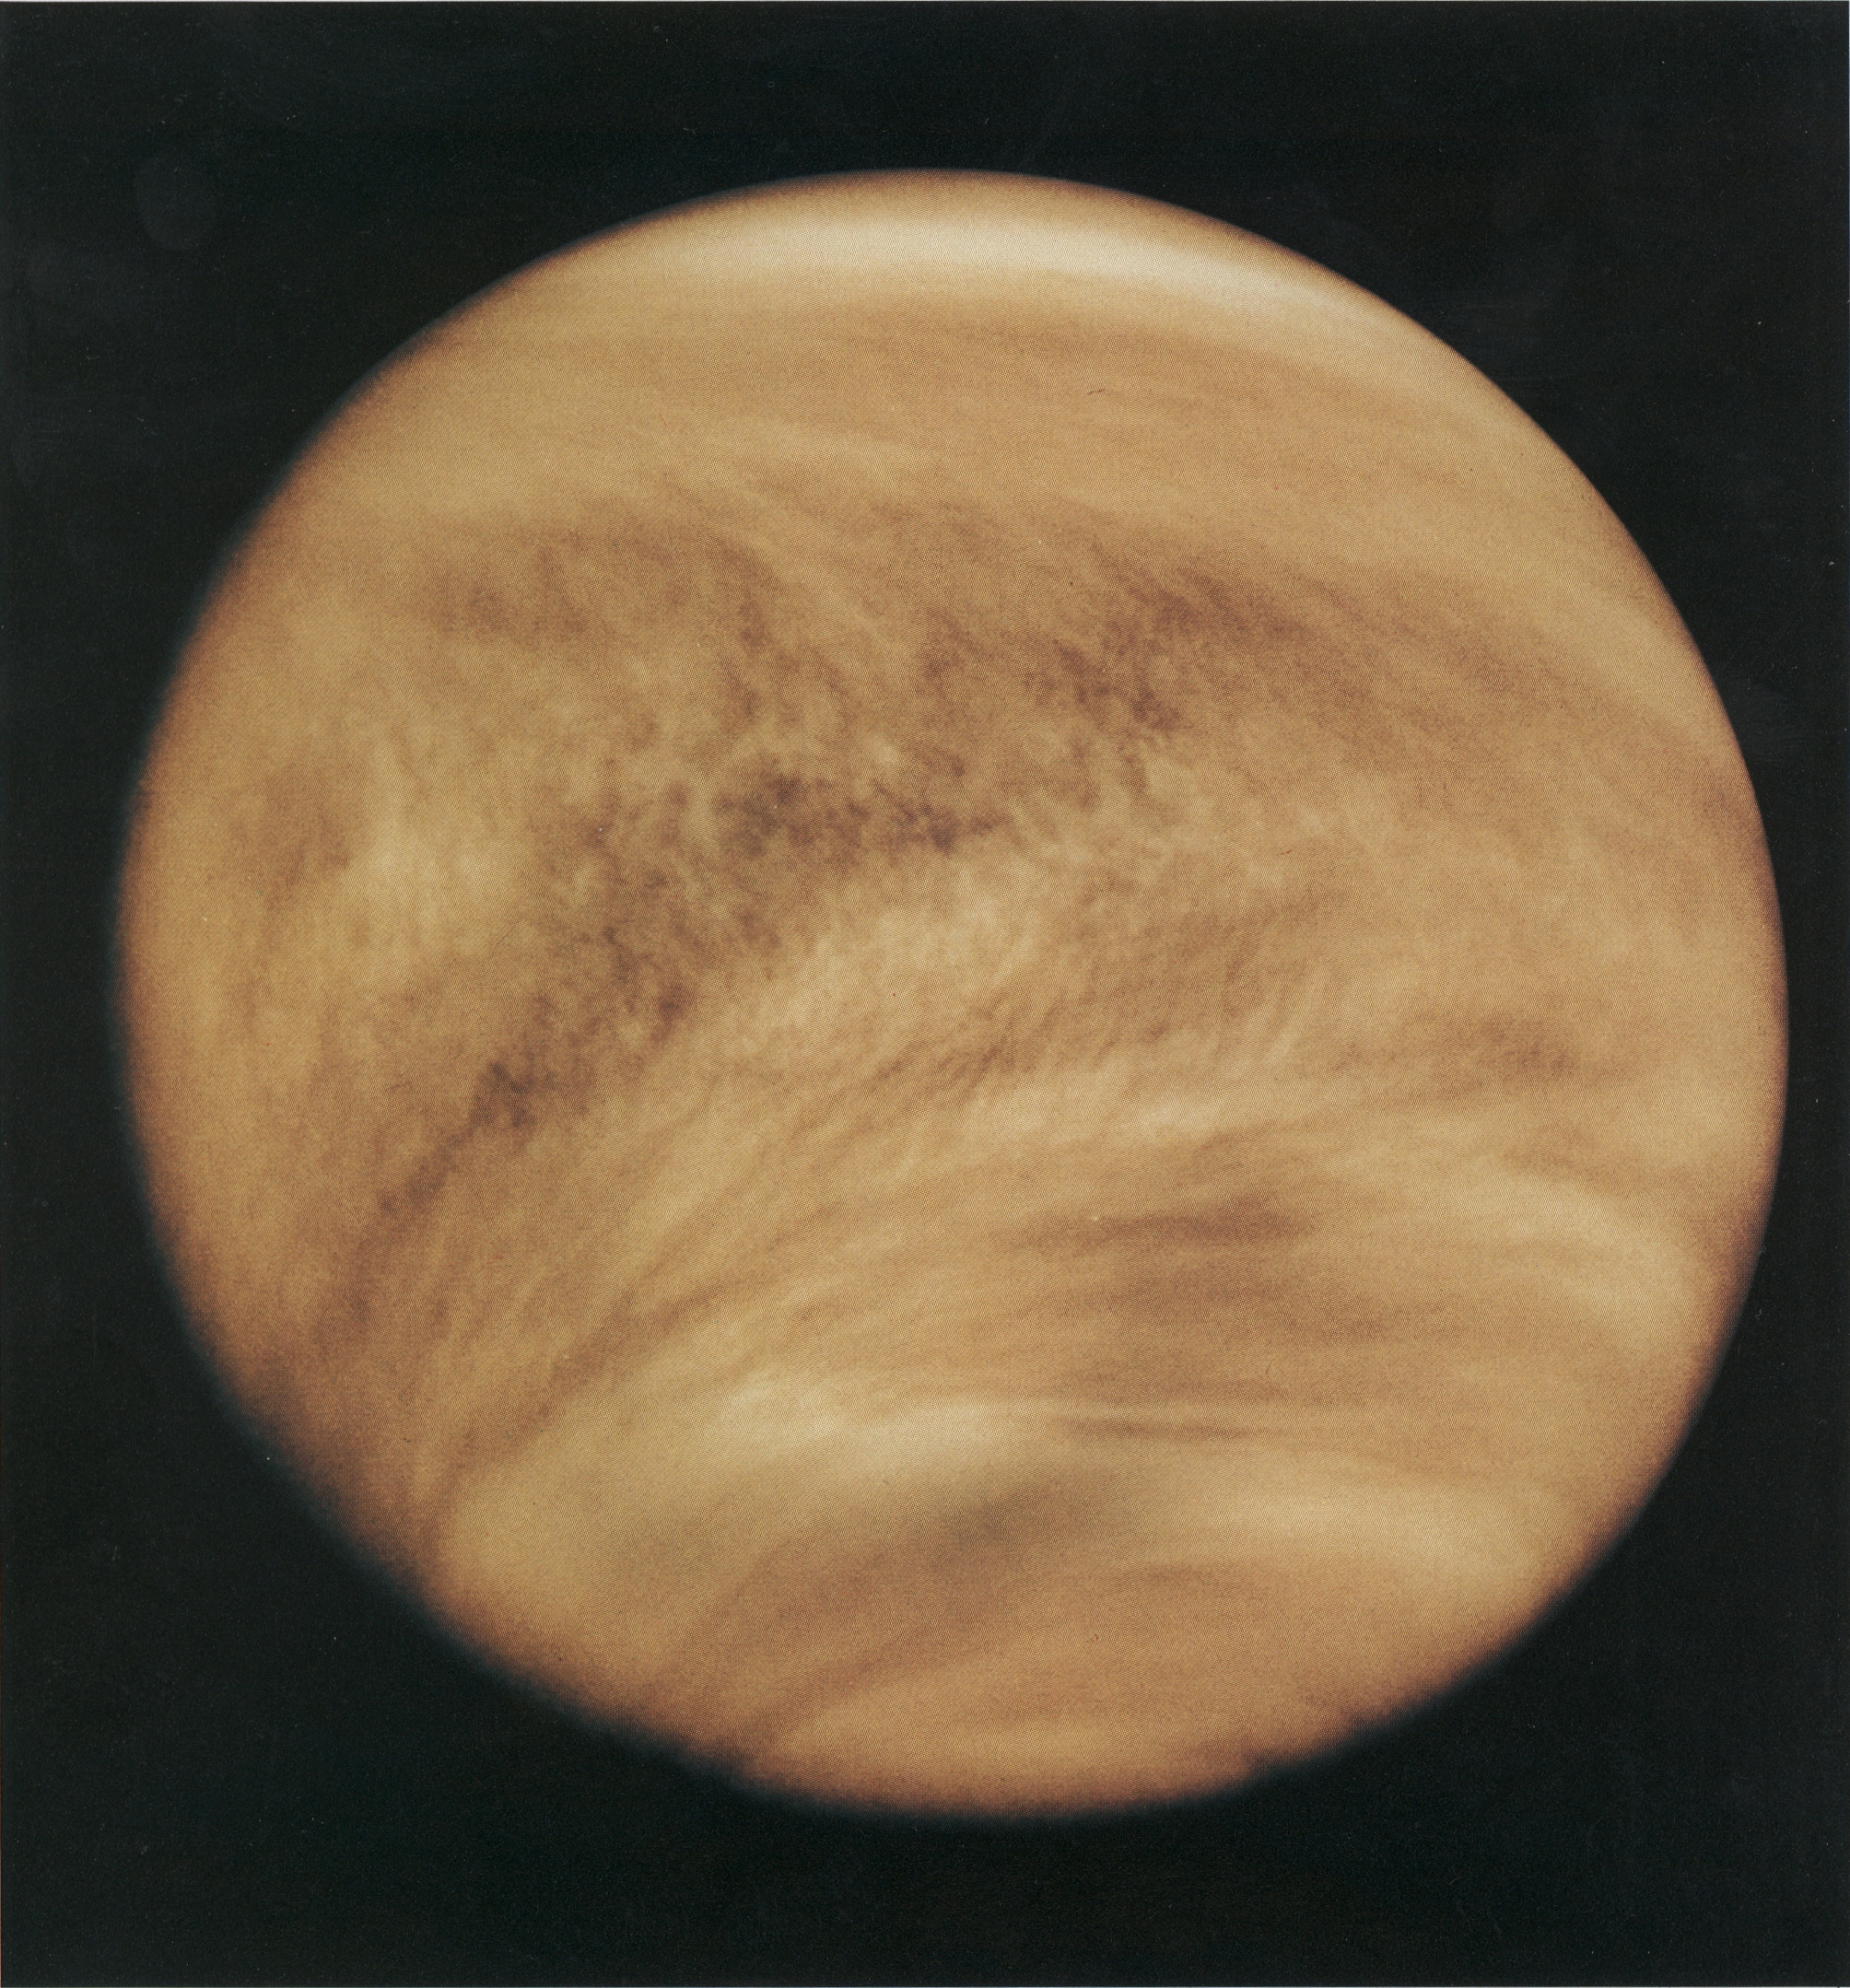 Venus as photographed by the Pioneer spacecraft.